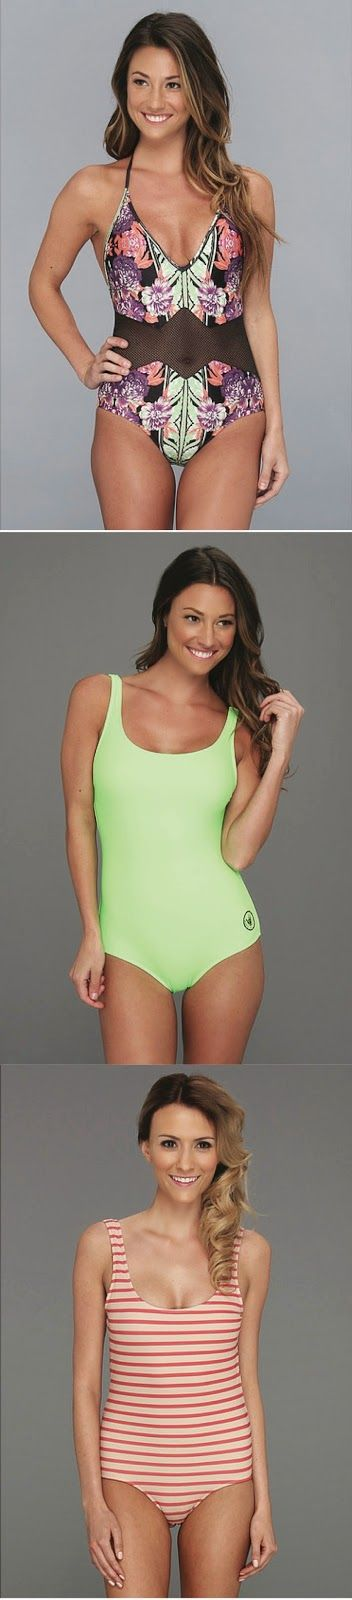 2014 Swimsuit Guide!!